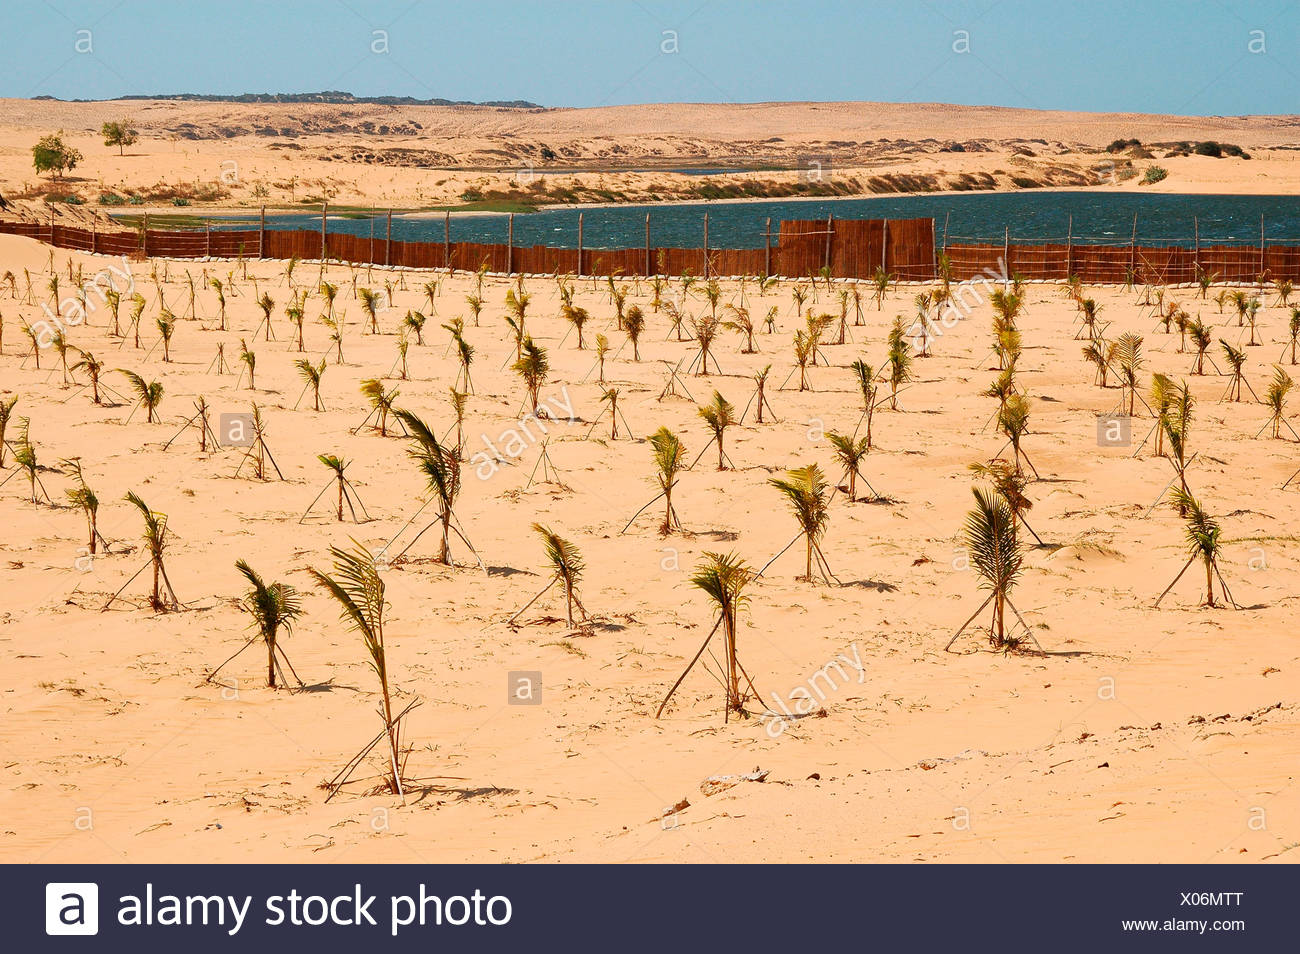 Plantation with young palms for a reforestation project for the containment of the growing desert areas, near Mui Ne, Vietnam,  - Stock Image